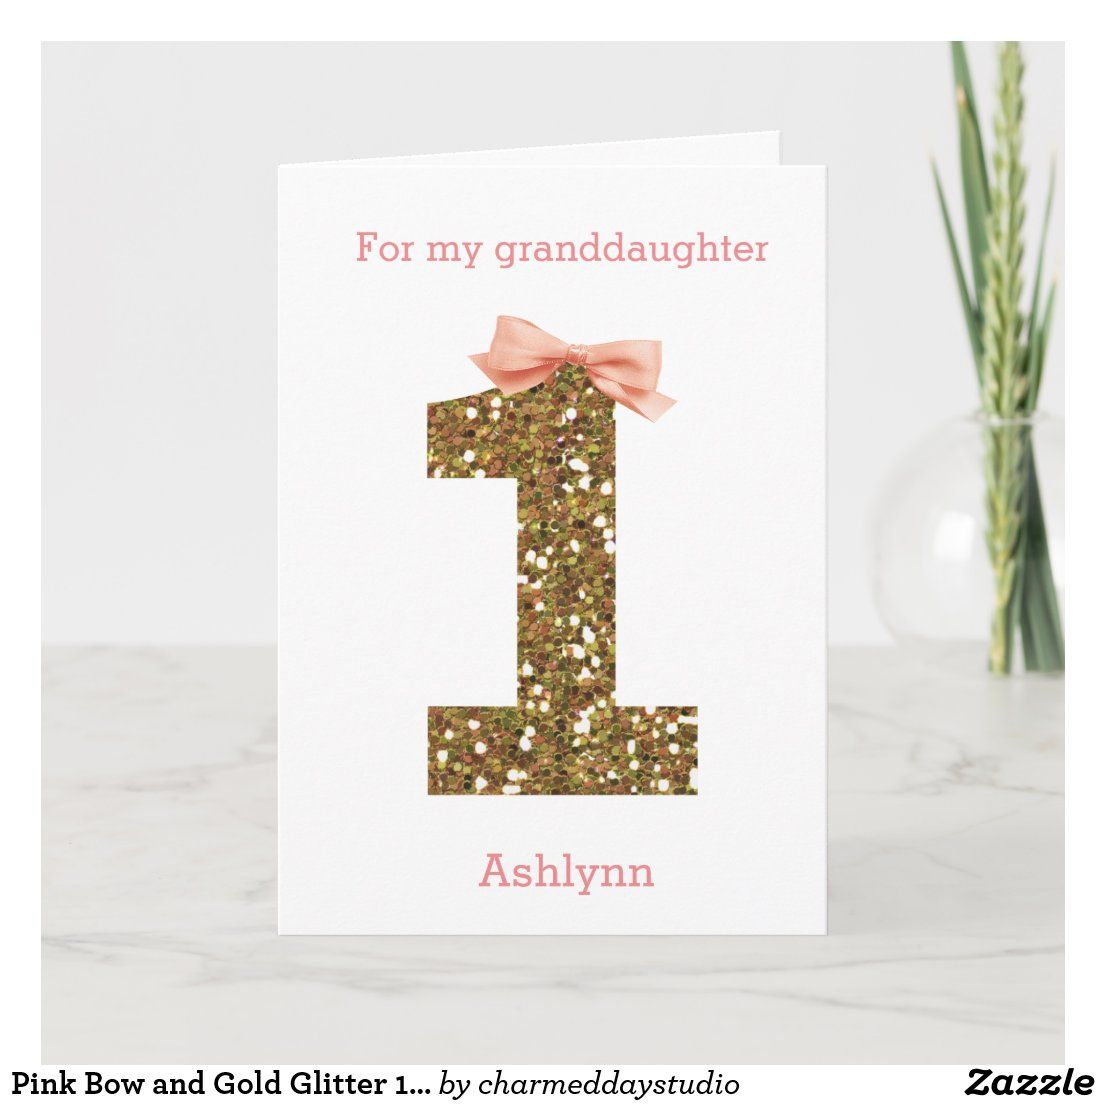 Pink Bow And Gold Glitter 1st Birthday Card Zazzle Com 1st Birthday Cards Birthday Cards Girl Birthday Cards